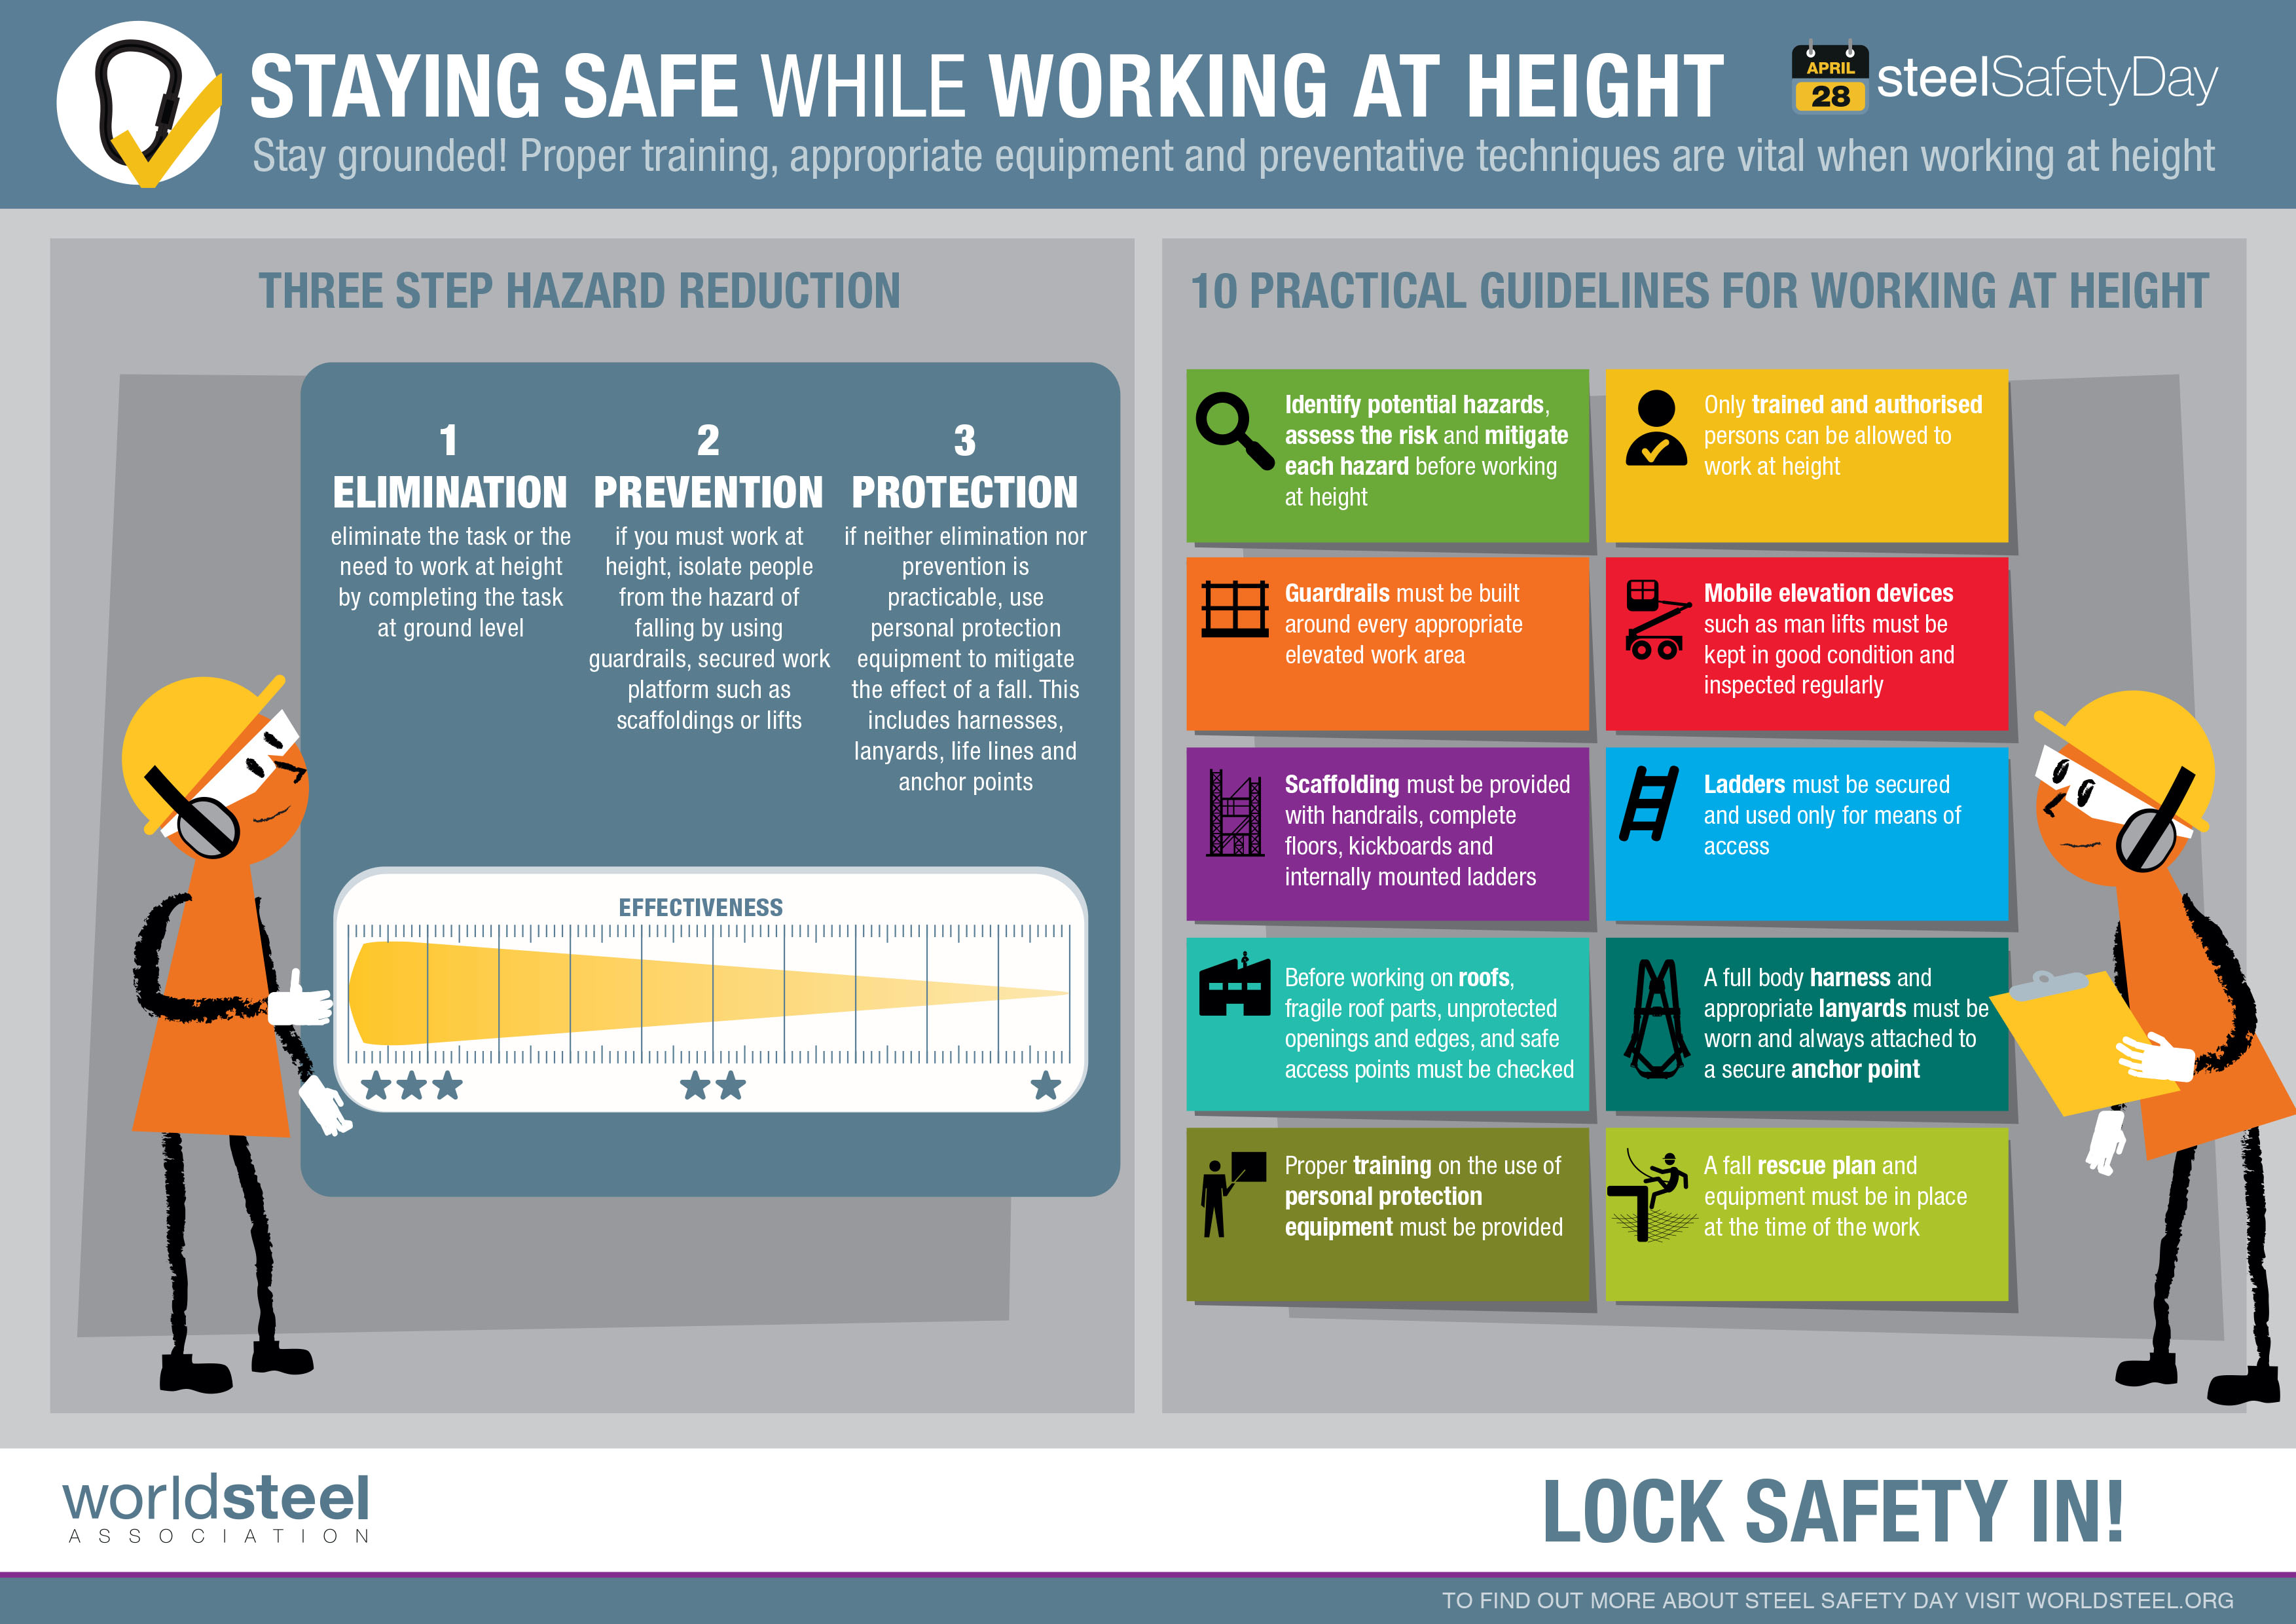 STAYING SAFE WHILE WORKING AT HEIGHT